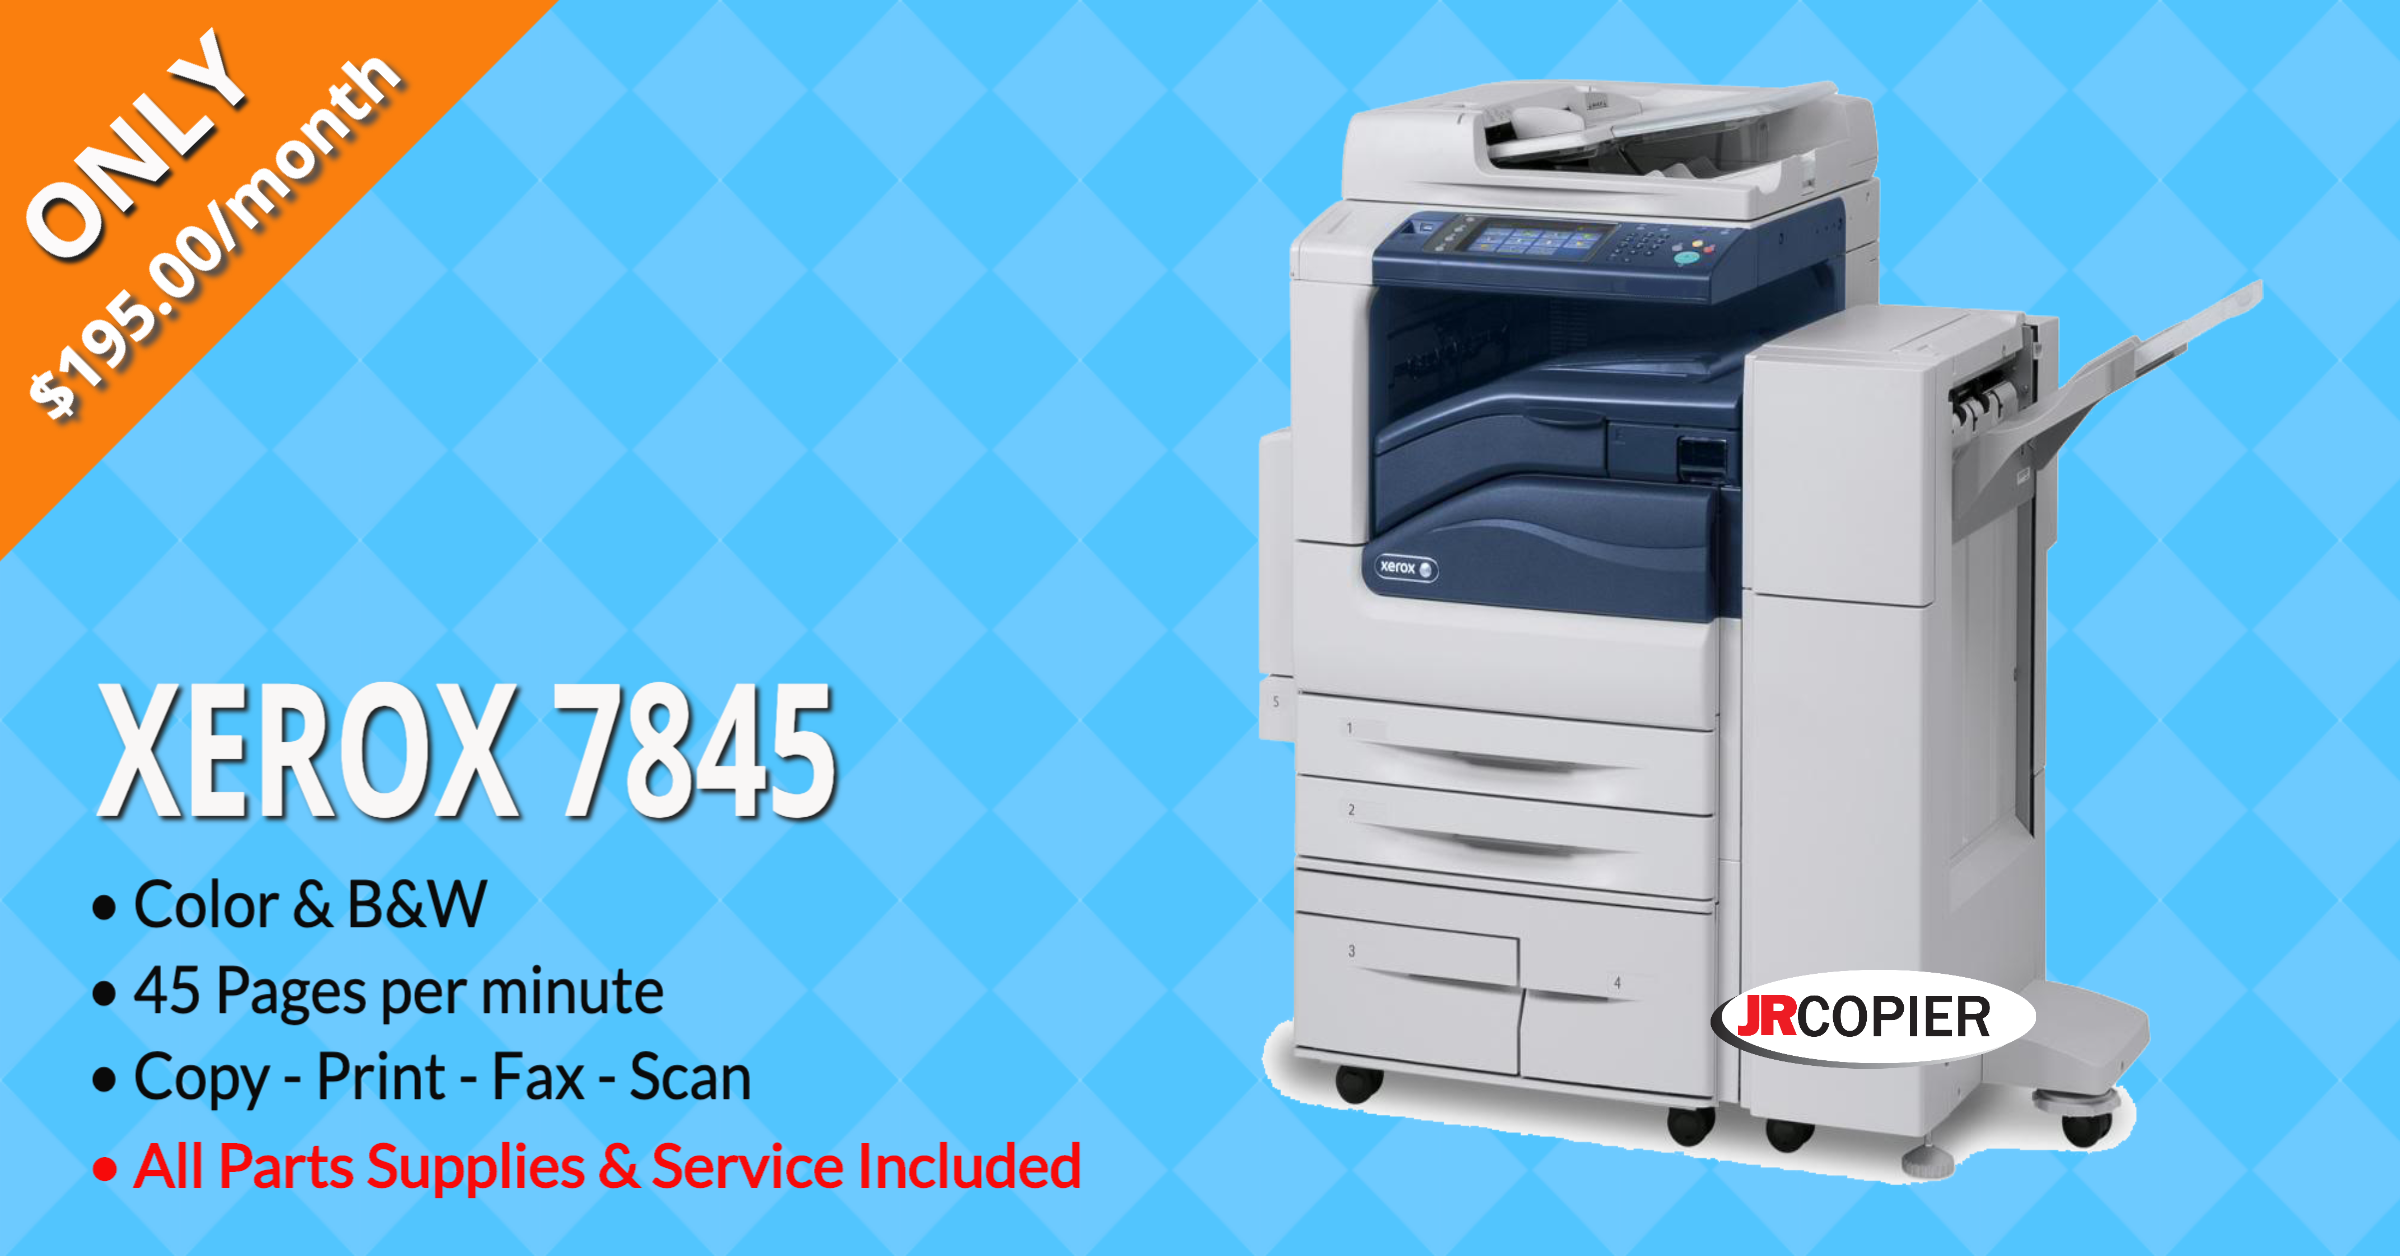 Multifunction Printer Sales 37778, 37813, 37814, 37815, 37816, 37860, 37877